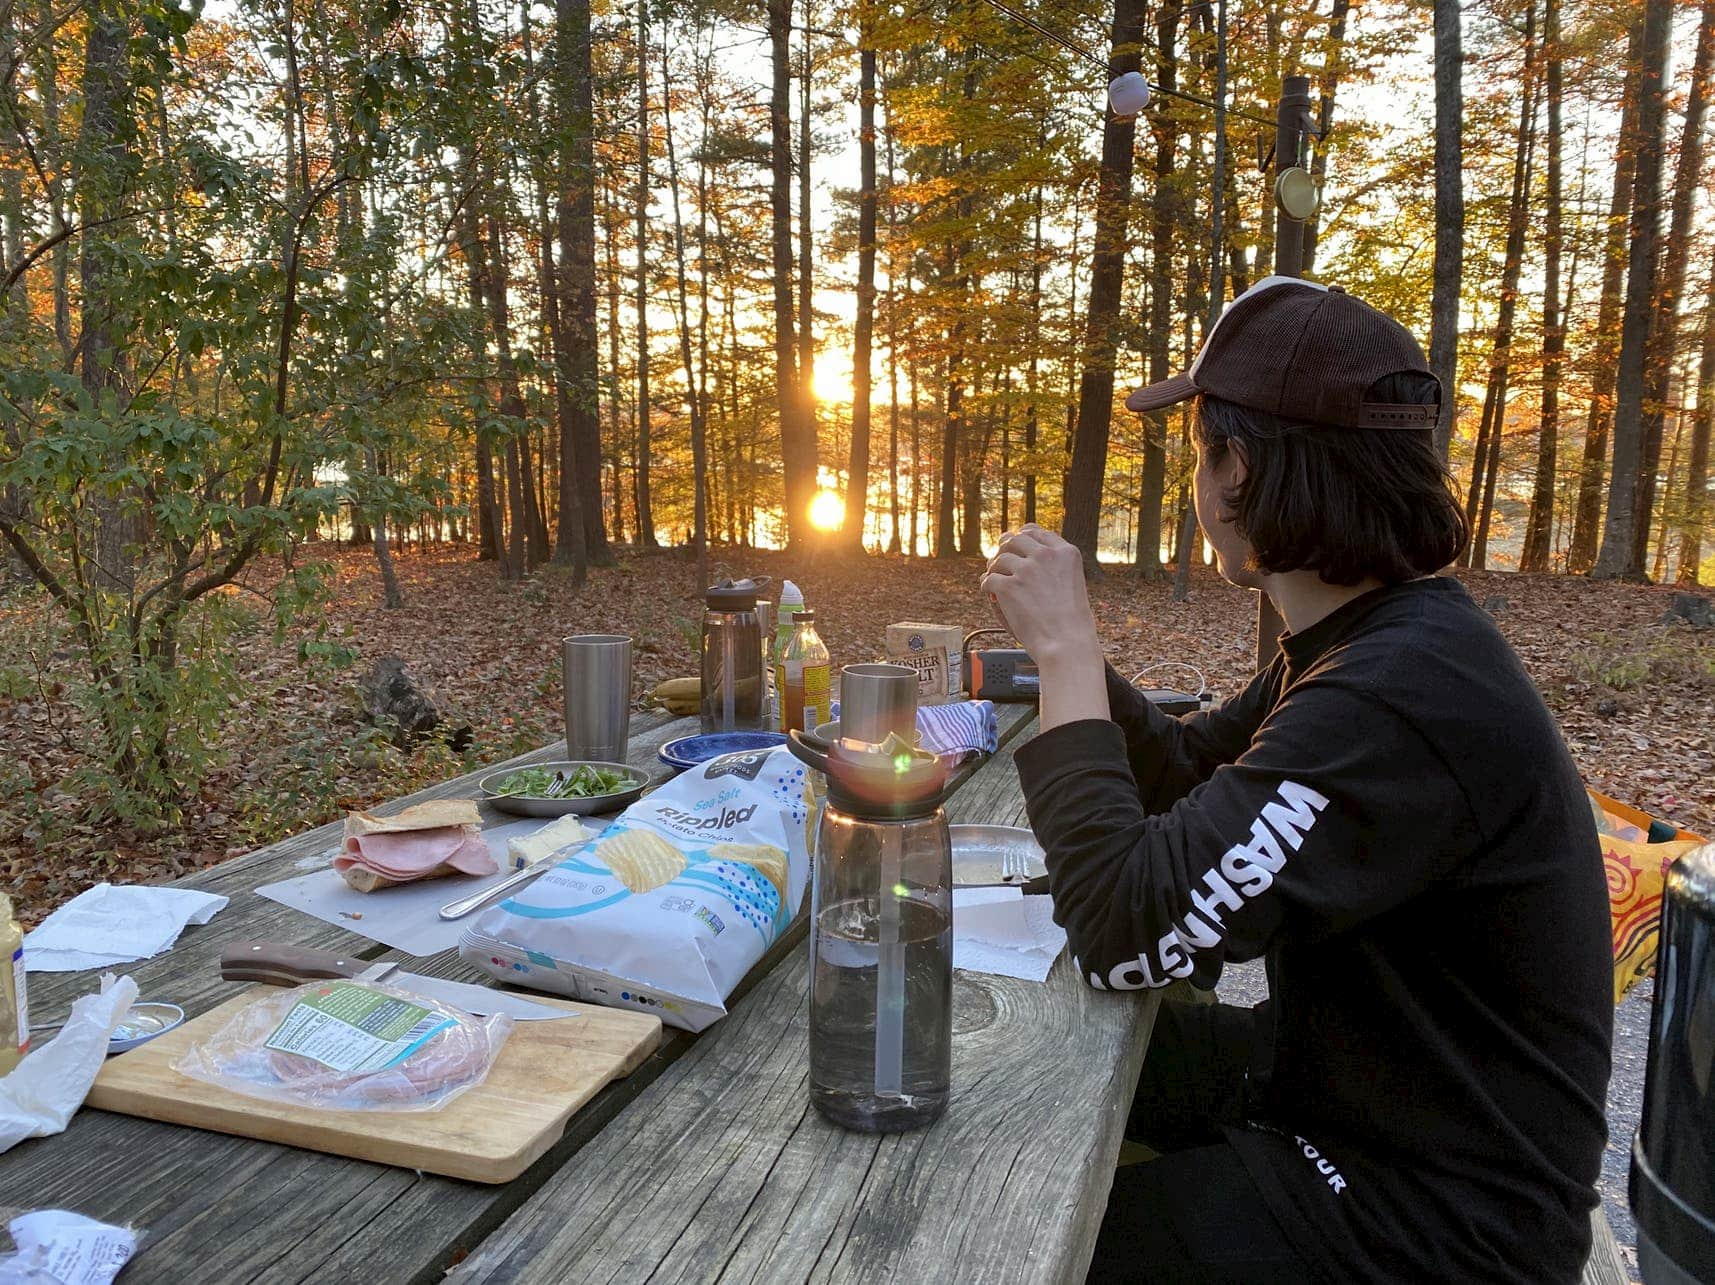 Guy in ball cap sititng at a picnic table making food at a campsite during sunset.